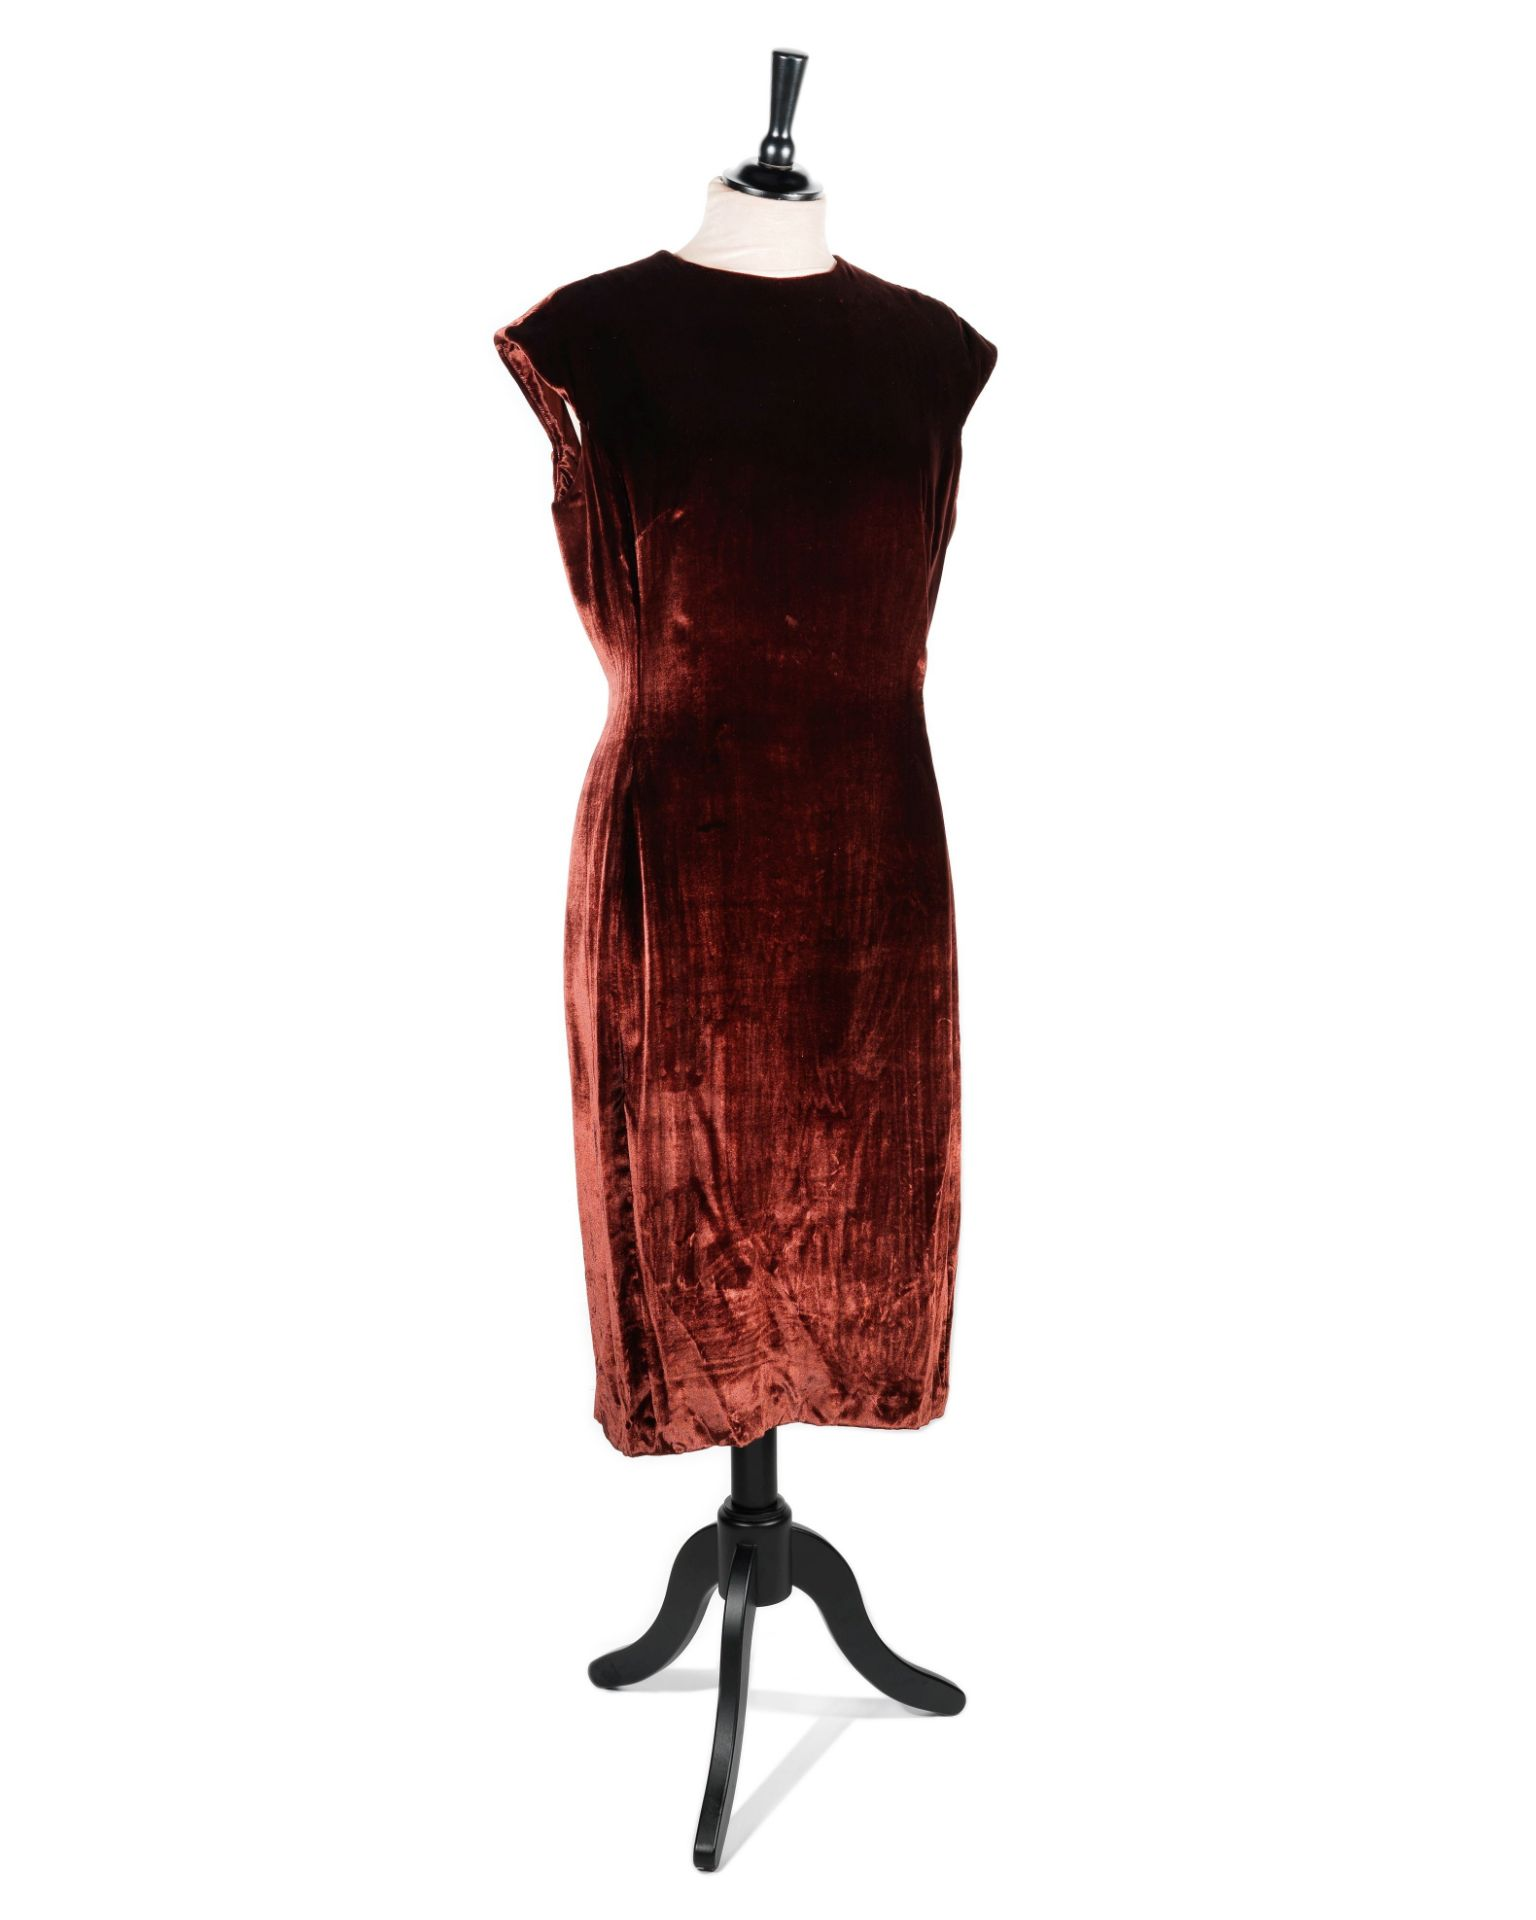 The Children Act: A screen-used red cocktail dress worn by Emma Thompson for her role as 'Fiona M...